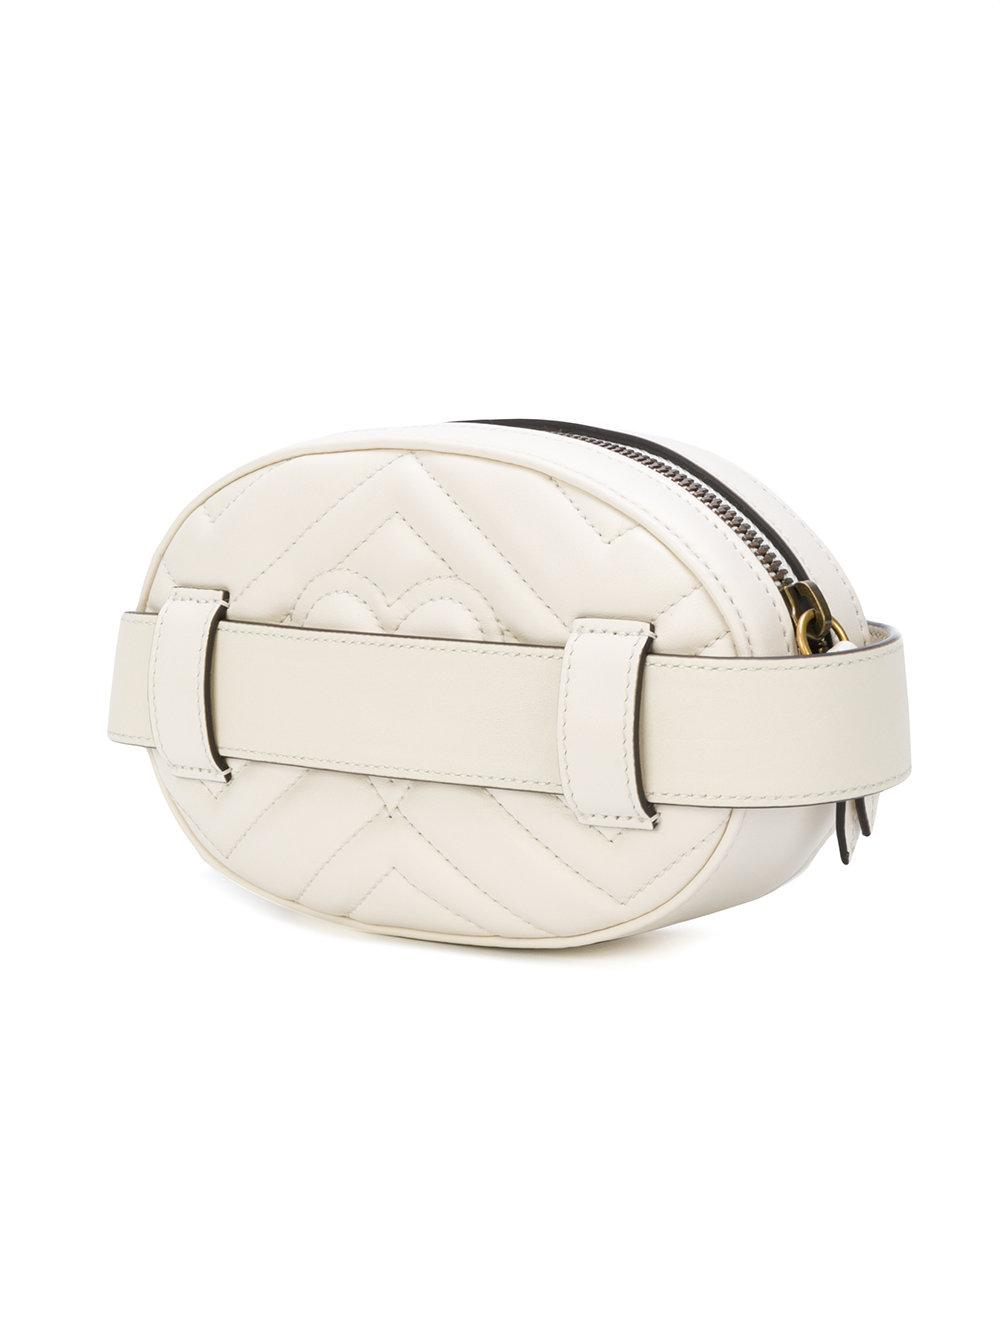 139e0b18f4d Lyst - Gucci Gg Marmont Belt Bag in White